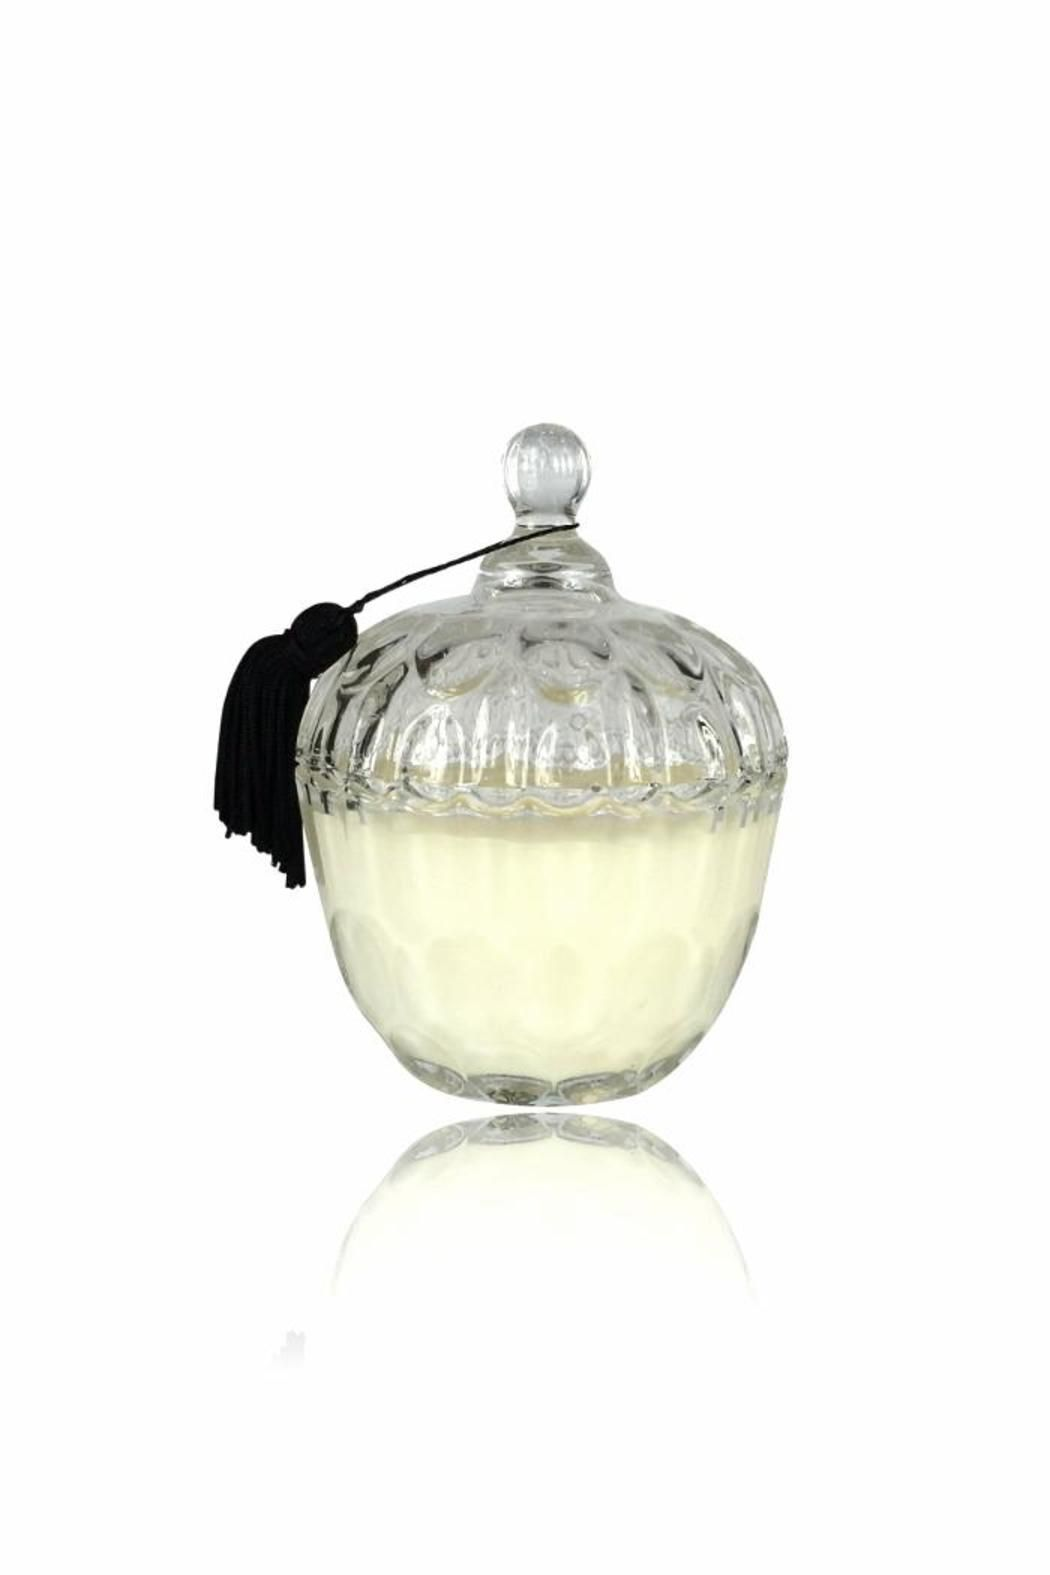 "Made from clean burning soy wax and lead free cotton wick, this curvaceous candle personifies the golden age of hollywood. It's glass scalloped base, lid, and scent dipped tassel will decadently dress your home. We encourage you to re-purpose the vessel to aptly house your trinkets and treasures. Approx. 70 - 80 hours of burn time. 10 oz. wax blend Measures: 6 inches high with lid, 2.75"" base, 4"" diameter   Persian Fig Cabochon Candle by DAVINCI. Home & Gifts - Home Decor - Candles & Scents…"